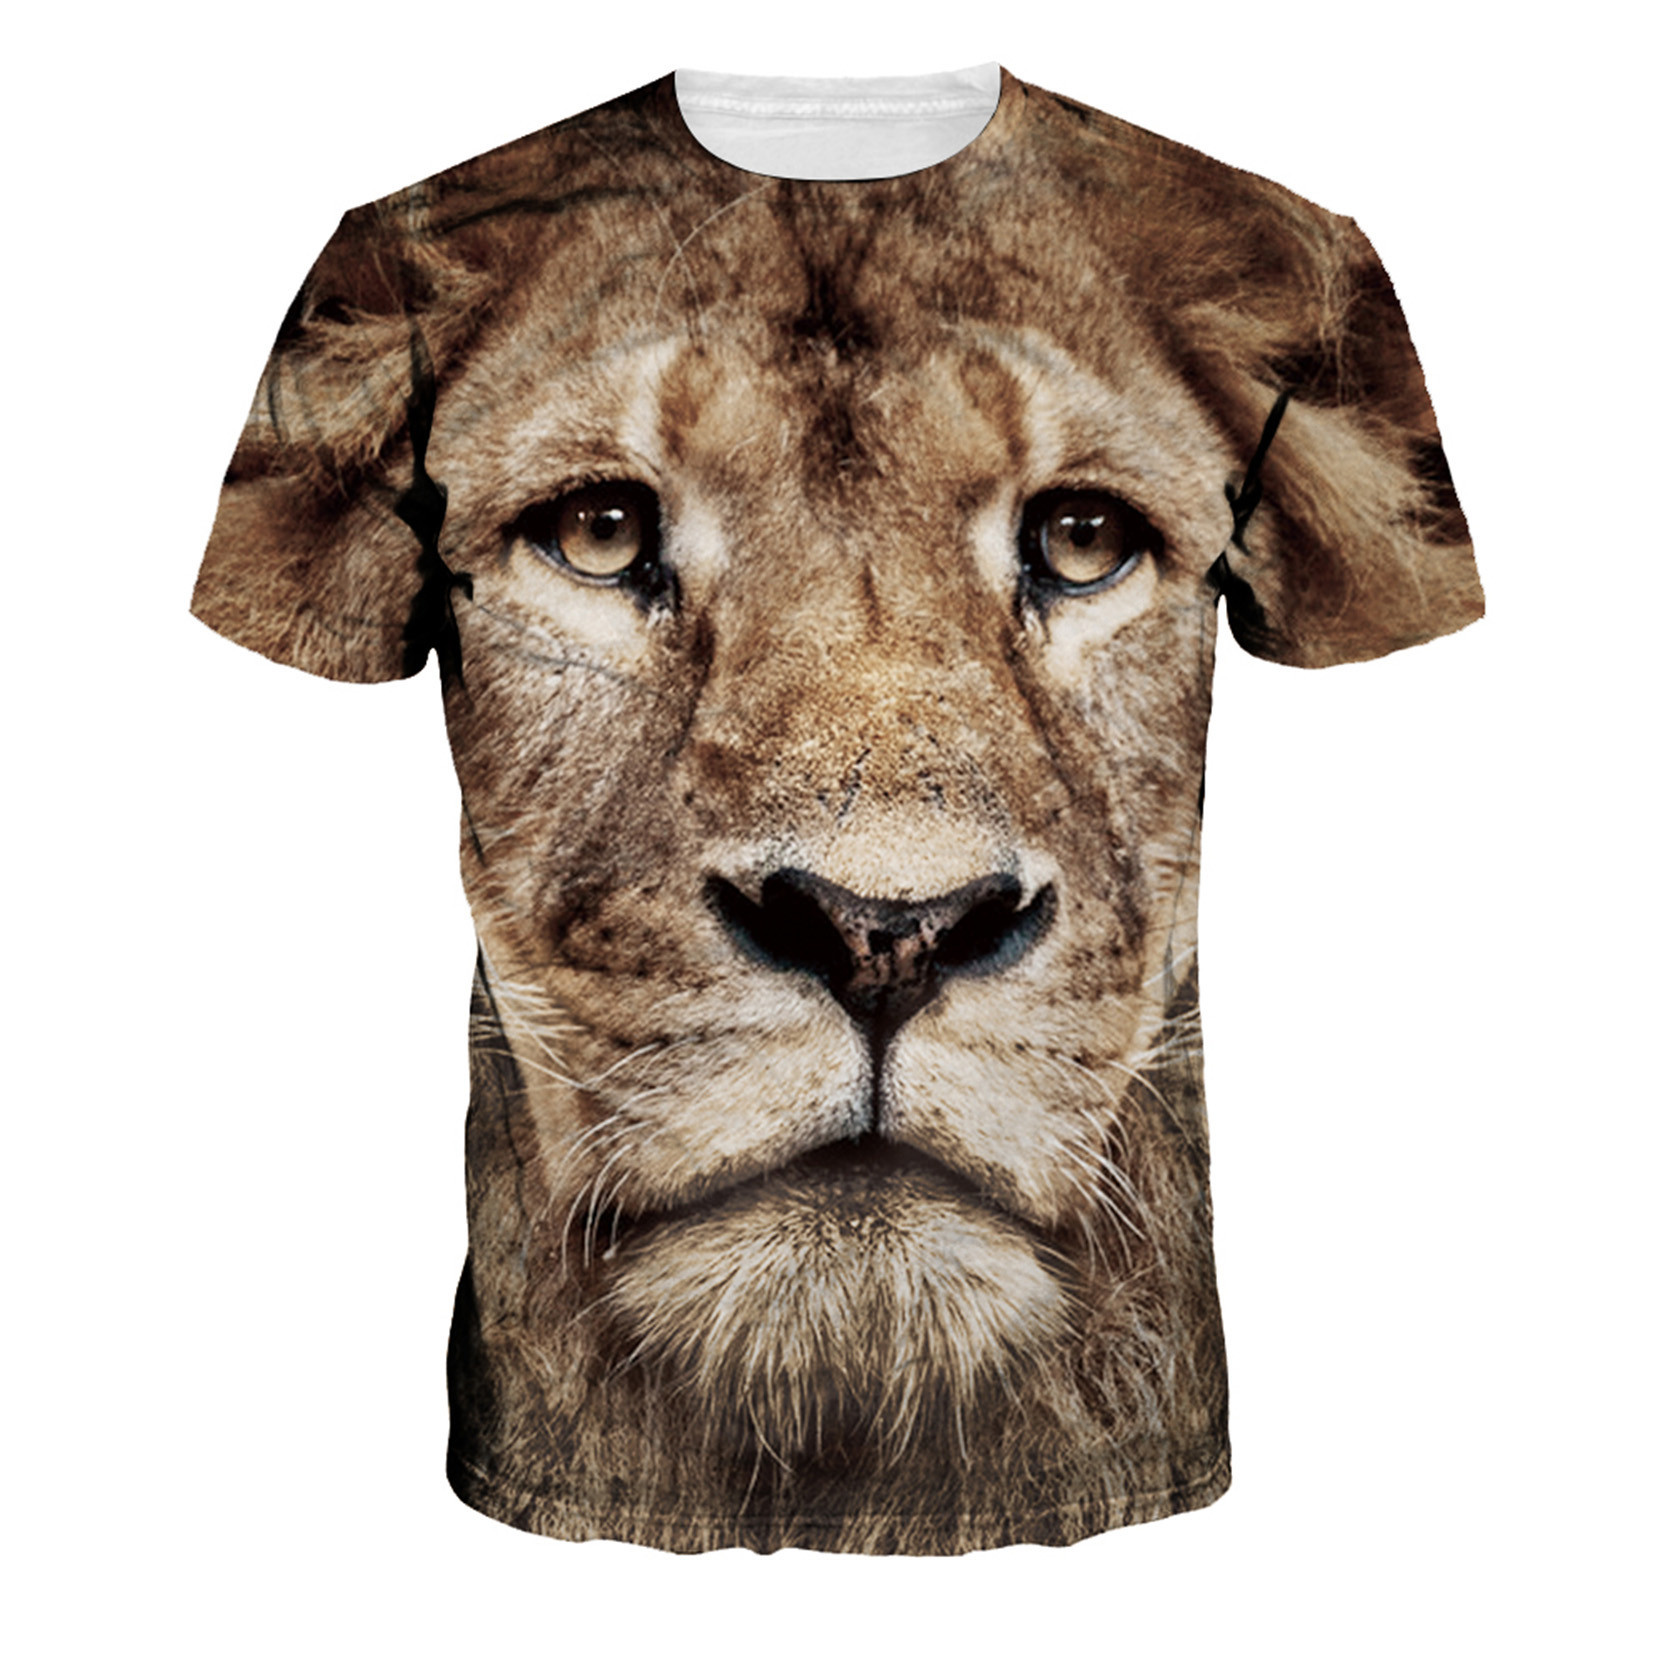 2016 new fashion brand t shirt 3d lion print tops hip hop style summer casual clothing